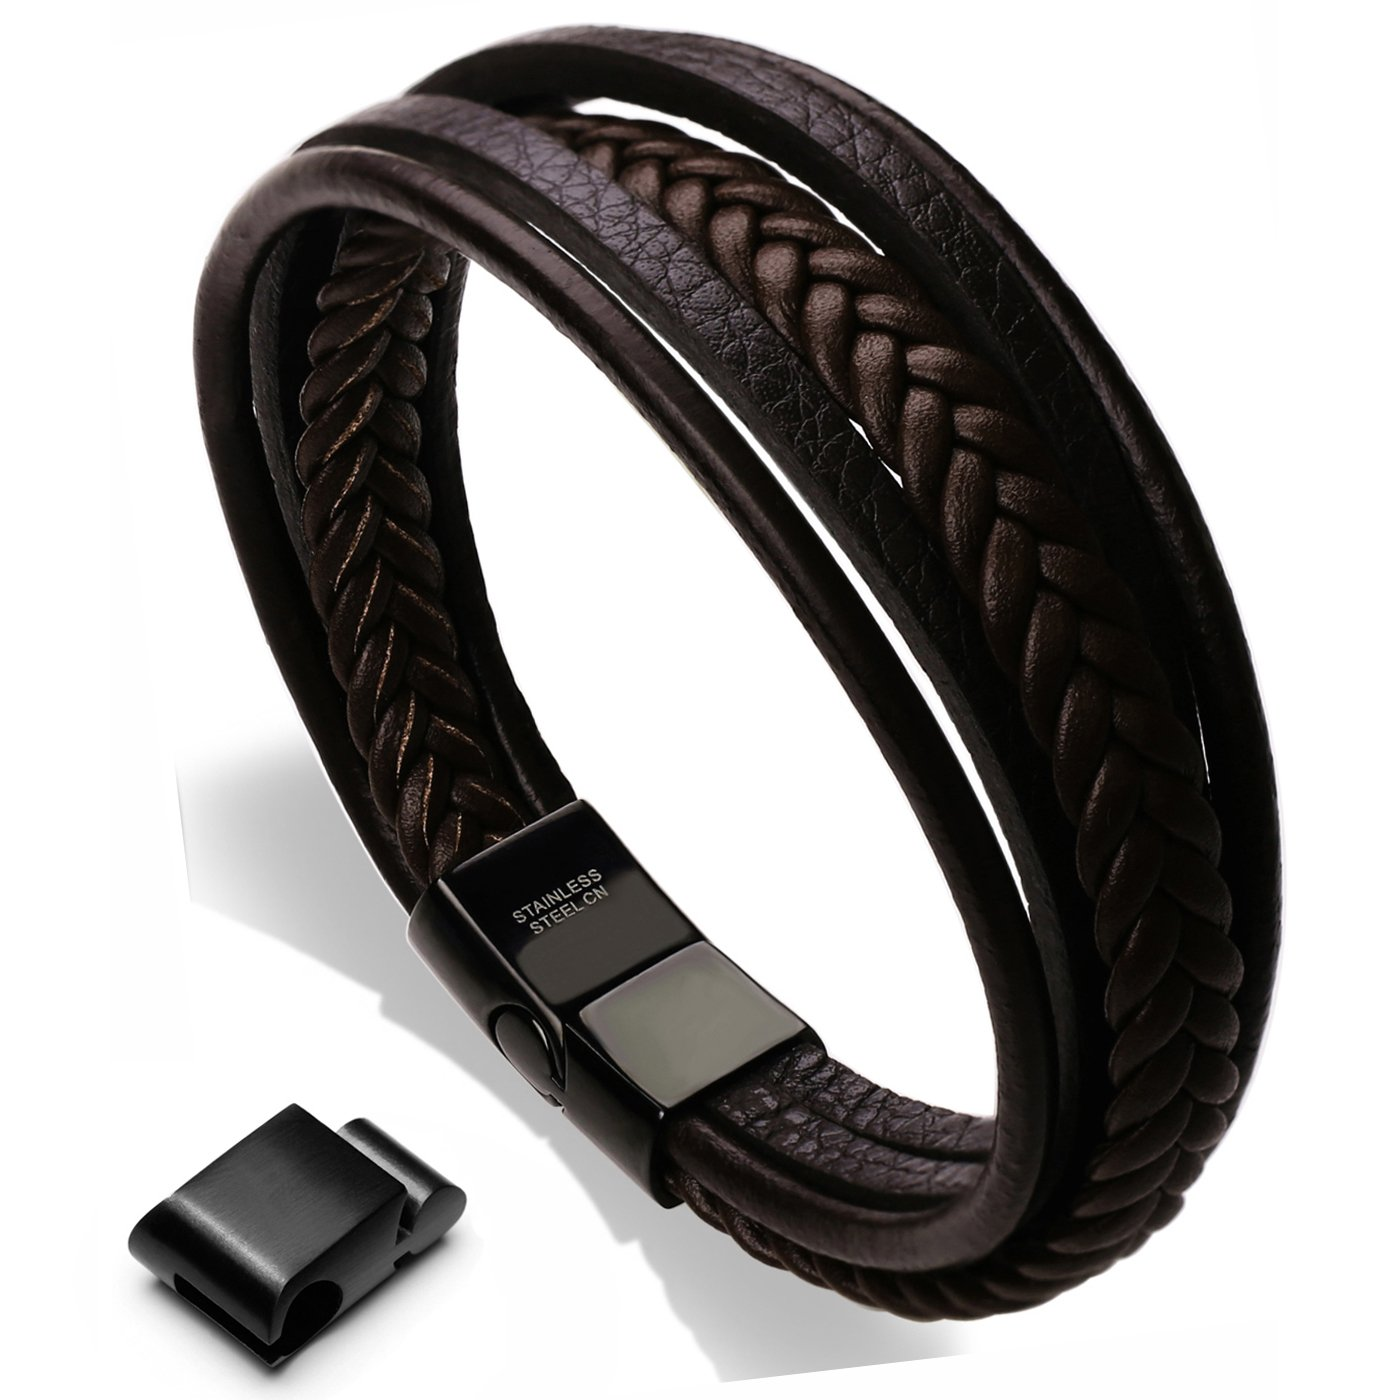 Murtoo Mens Cowhide Leather Braided Bracelet Magnetic-Clasp Multi-layer Wrap Bracelet, 8.85 inch 8.85 inch (Black) BMT160602A